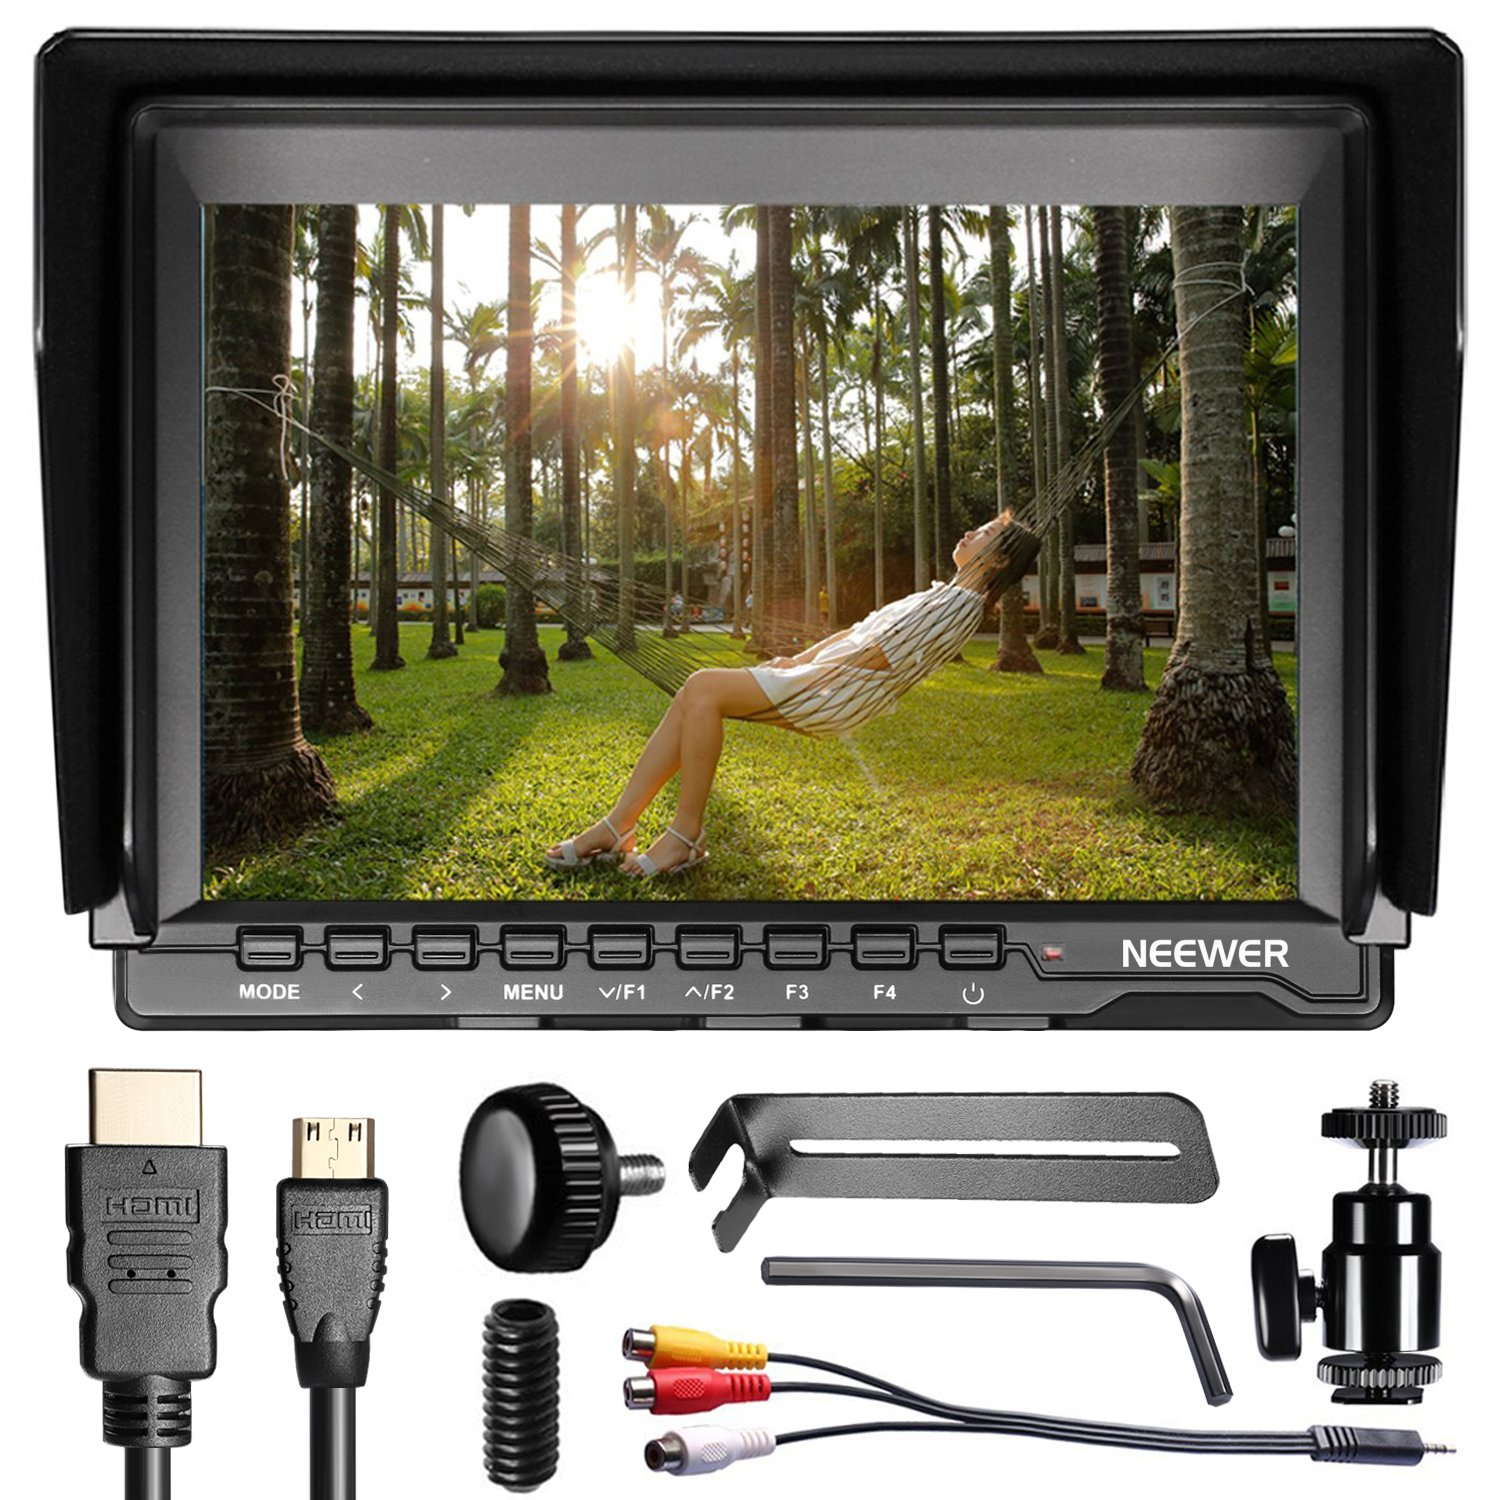 Neewer NW759 7Inch 1280x800 IPS Screen Camera Field Monitor with 1 Mini HDMI Cable for BMPCC,AV Cable for FPV, 16:10 or 4:3 Adjustable Display Ratio for Sony Canon Nikon Olympus (Battery not included) by Neewer